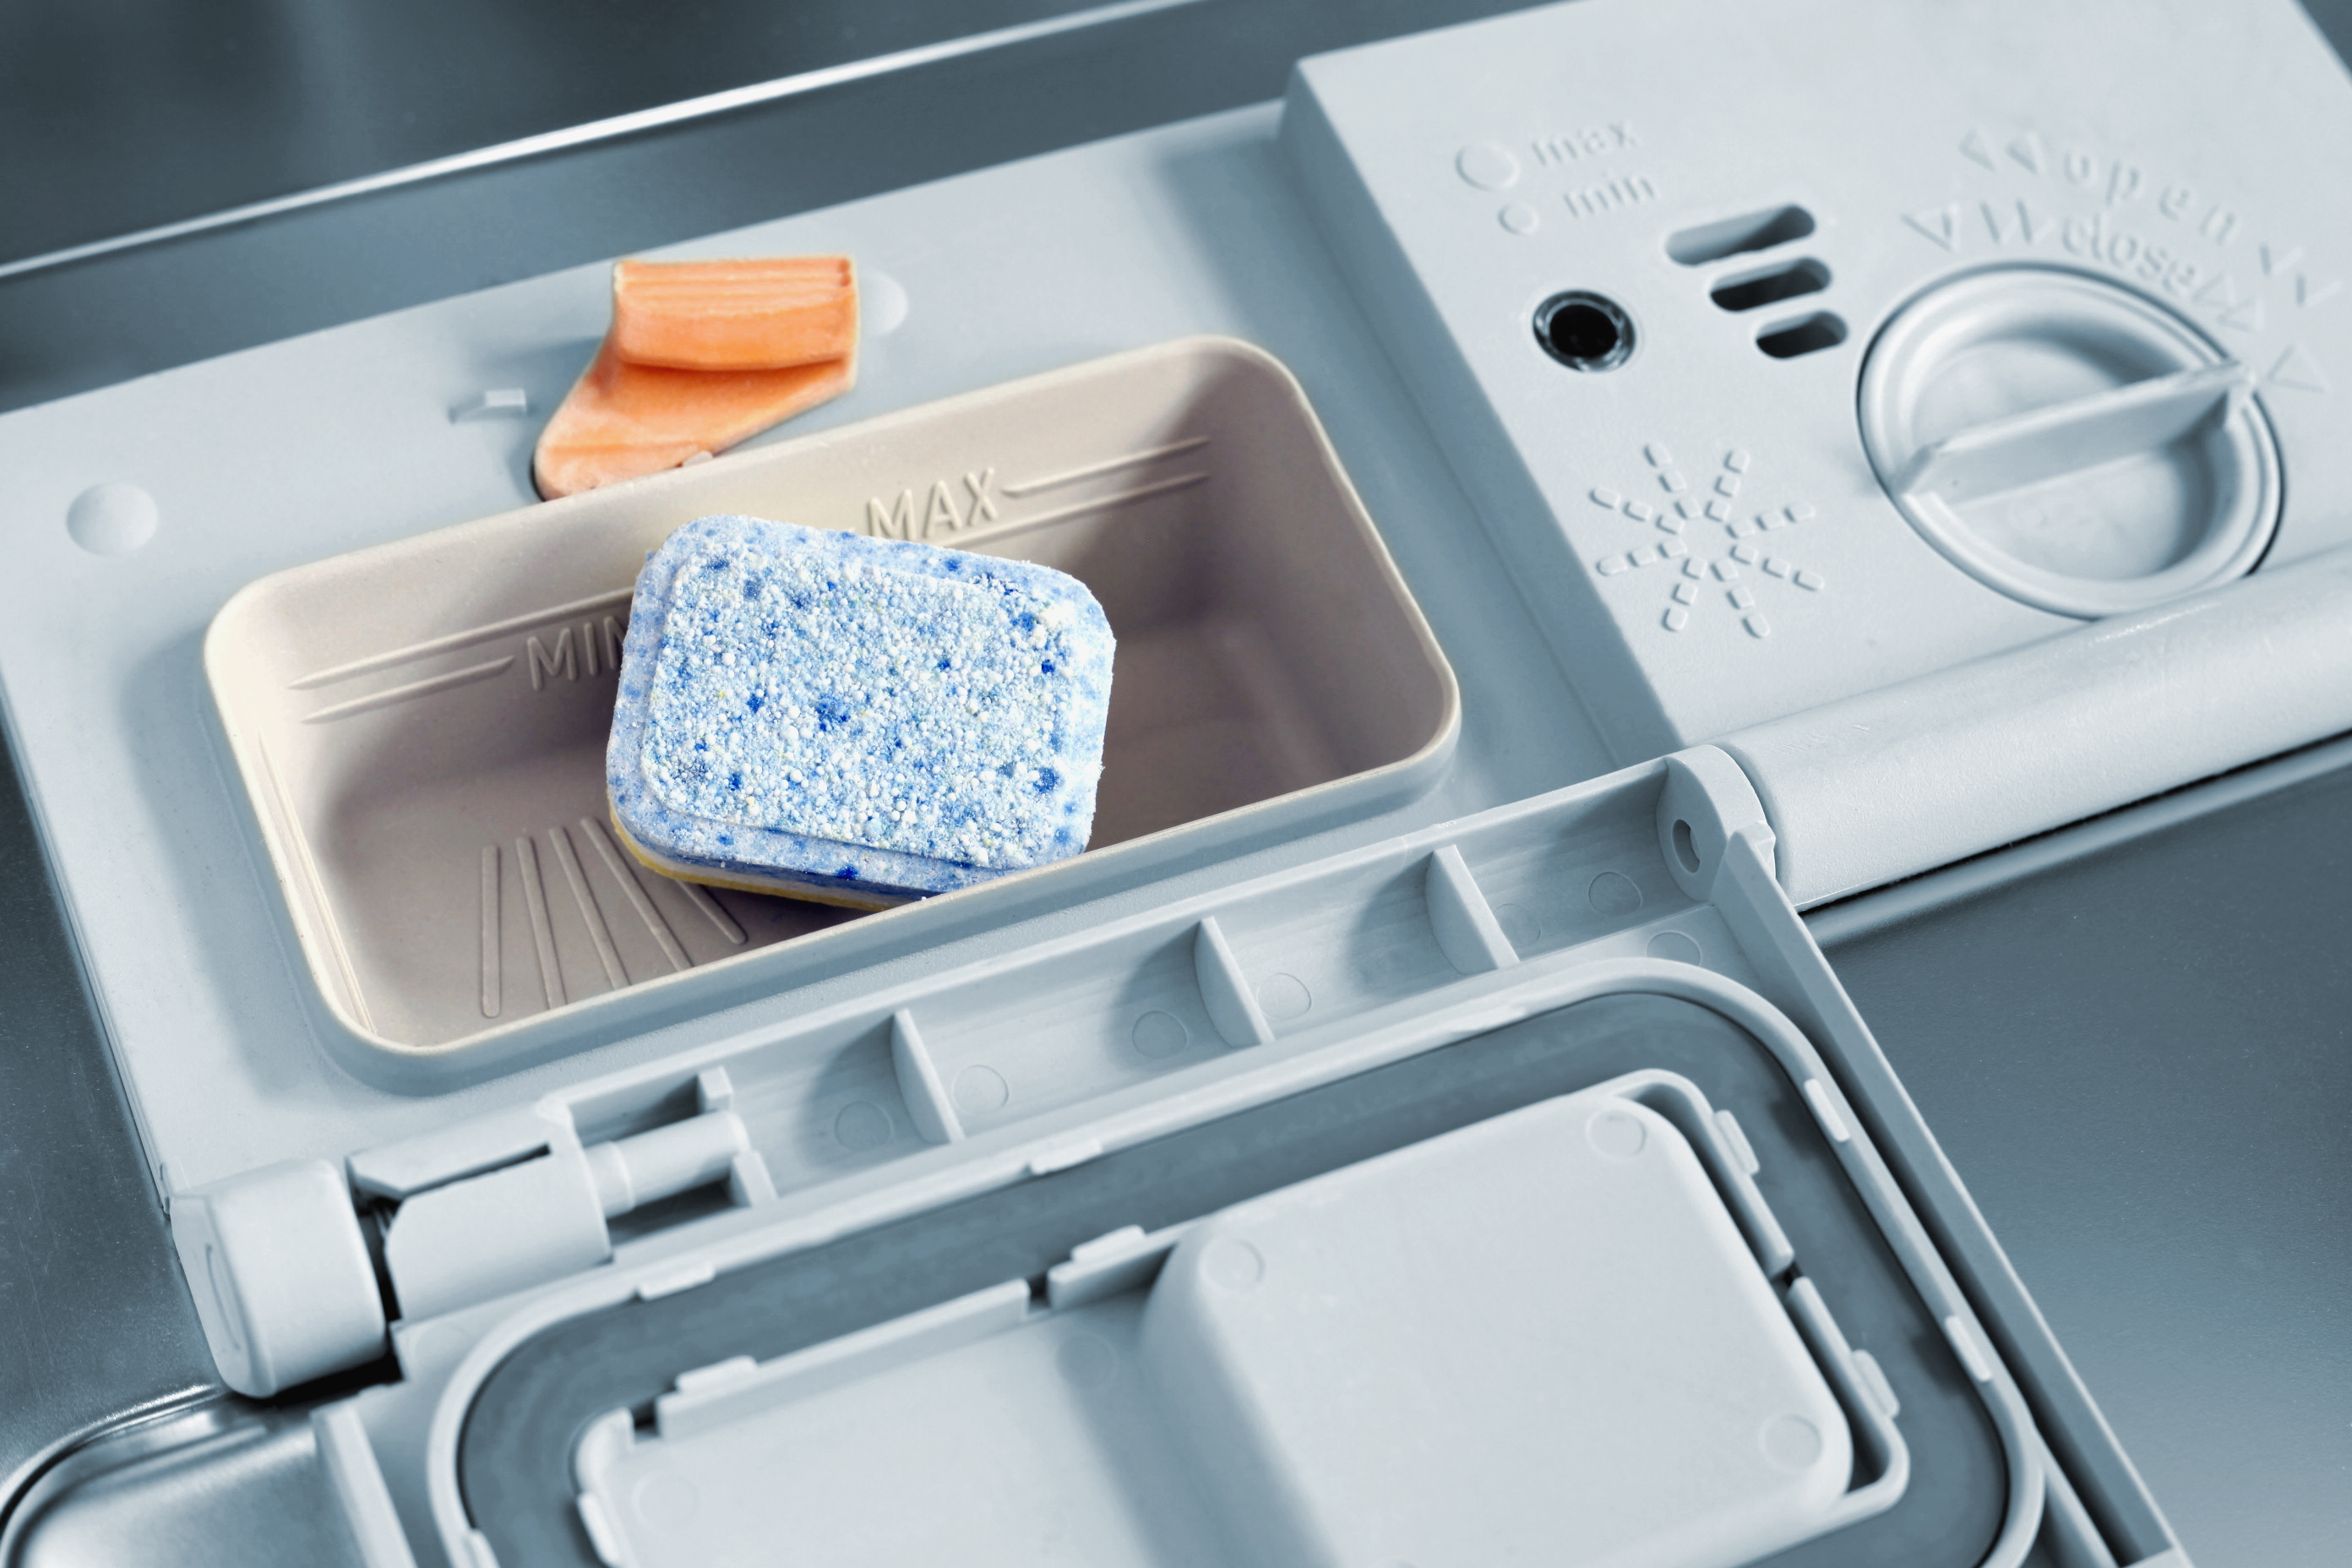 7 Things You Didn't Know Your Dishwasher Could Do